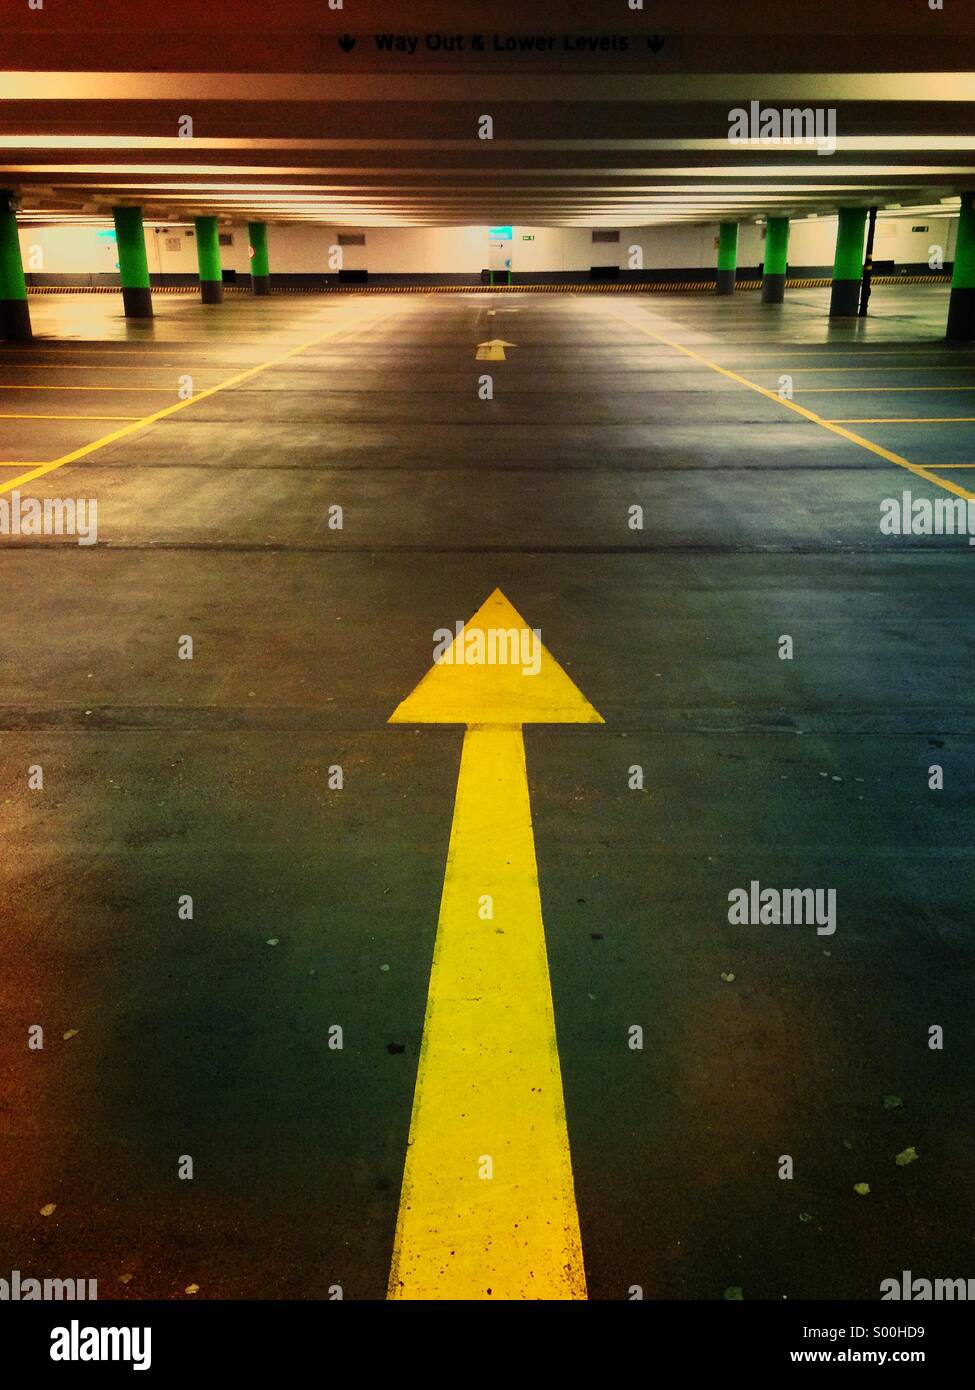 Car park arrow - Stock Image